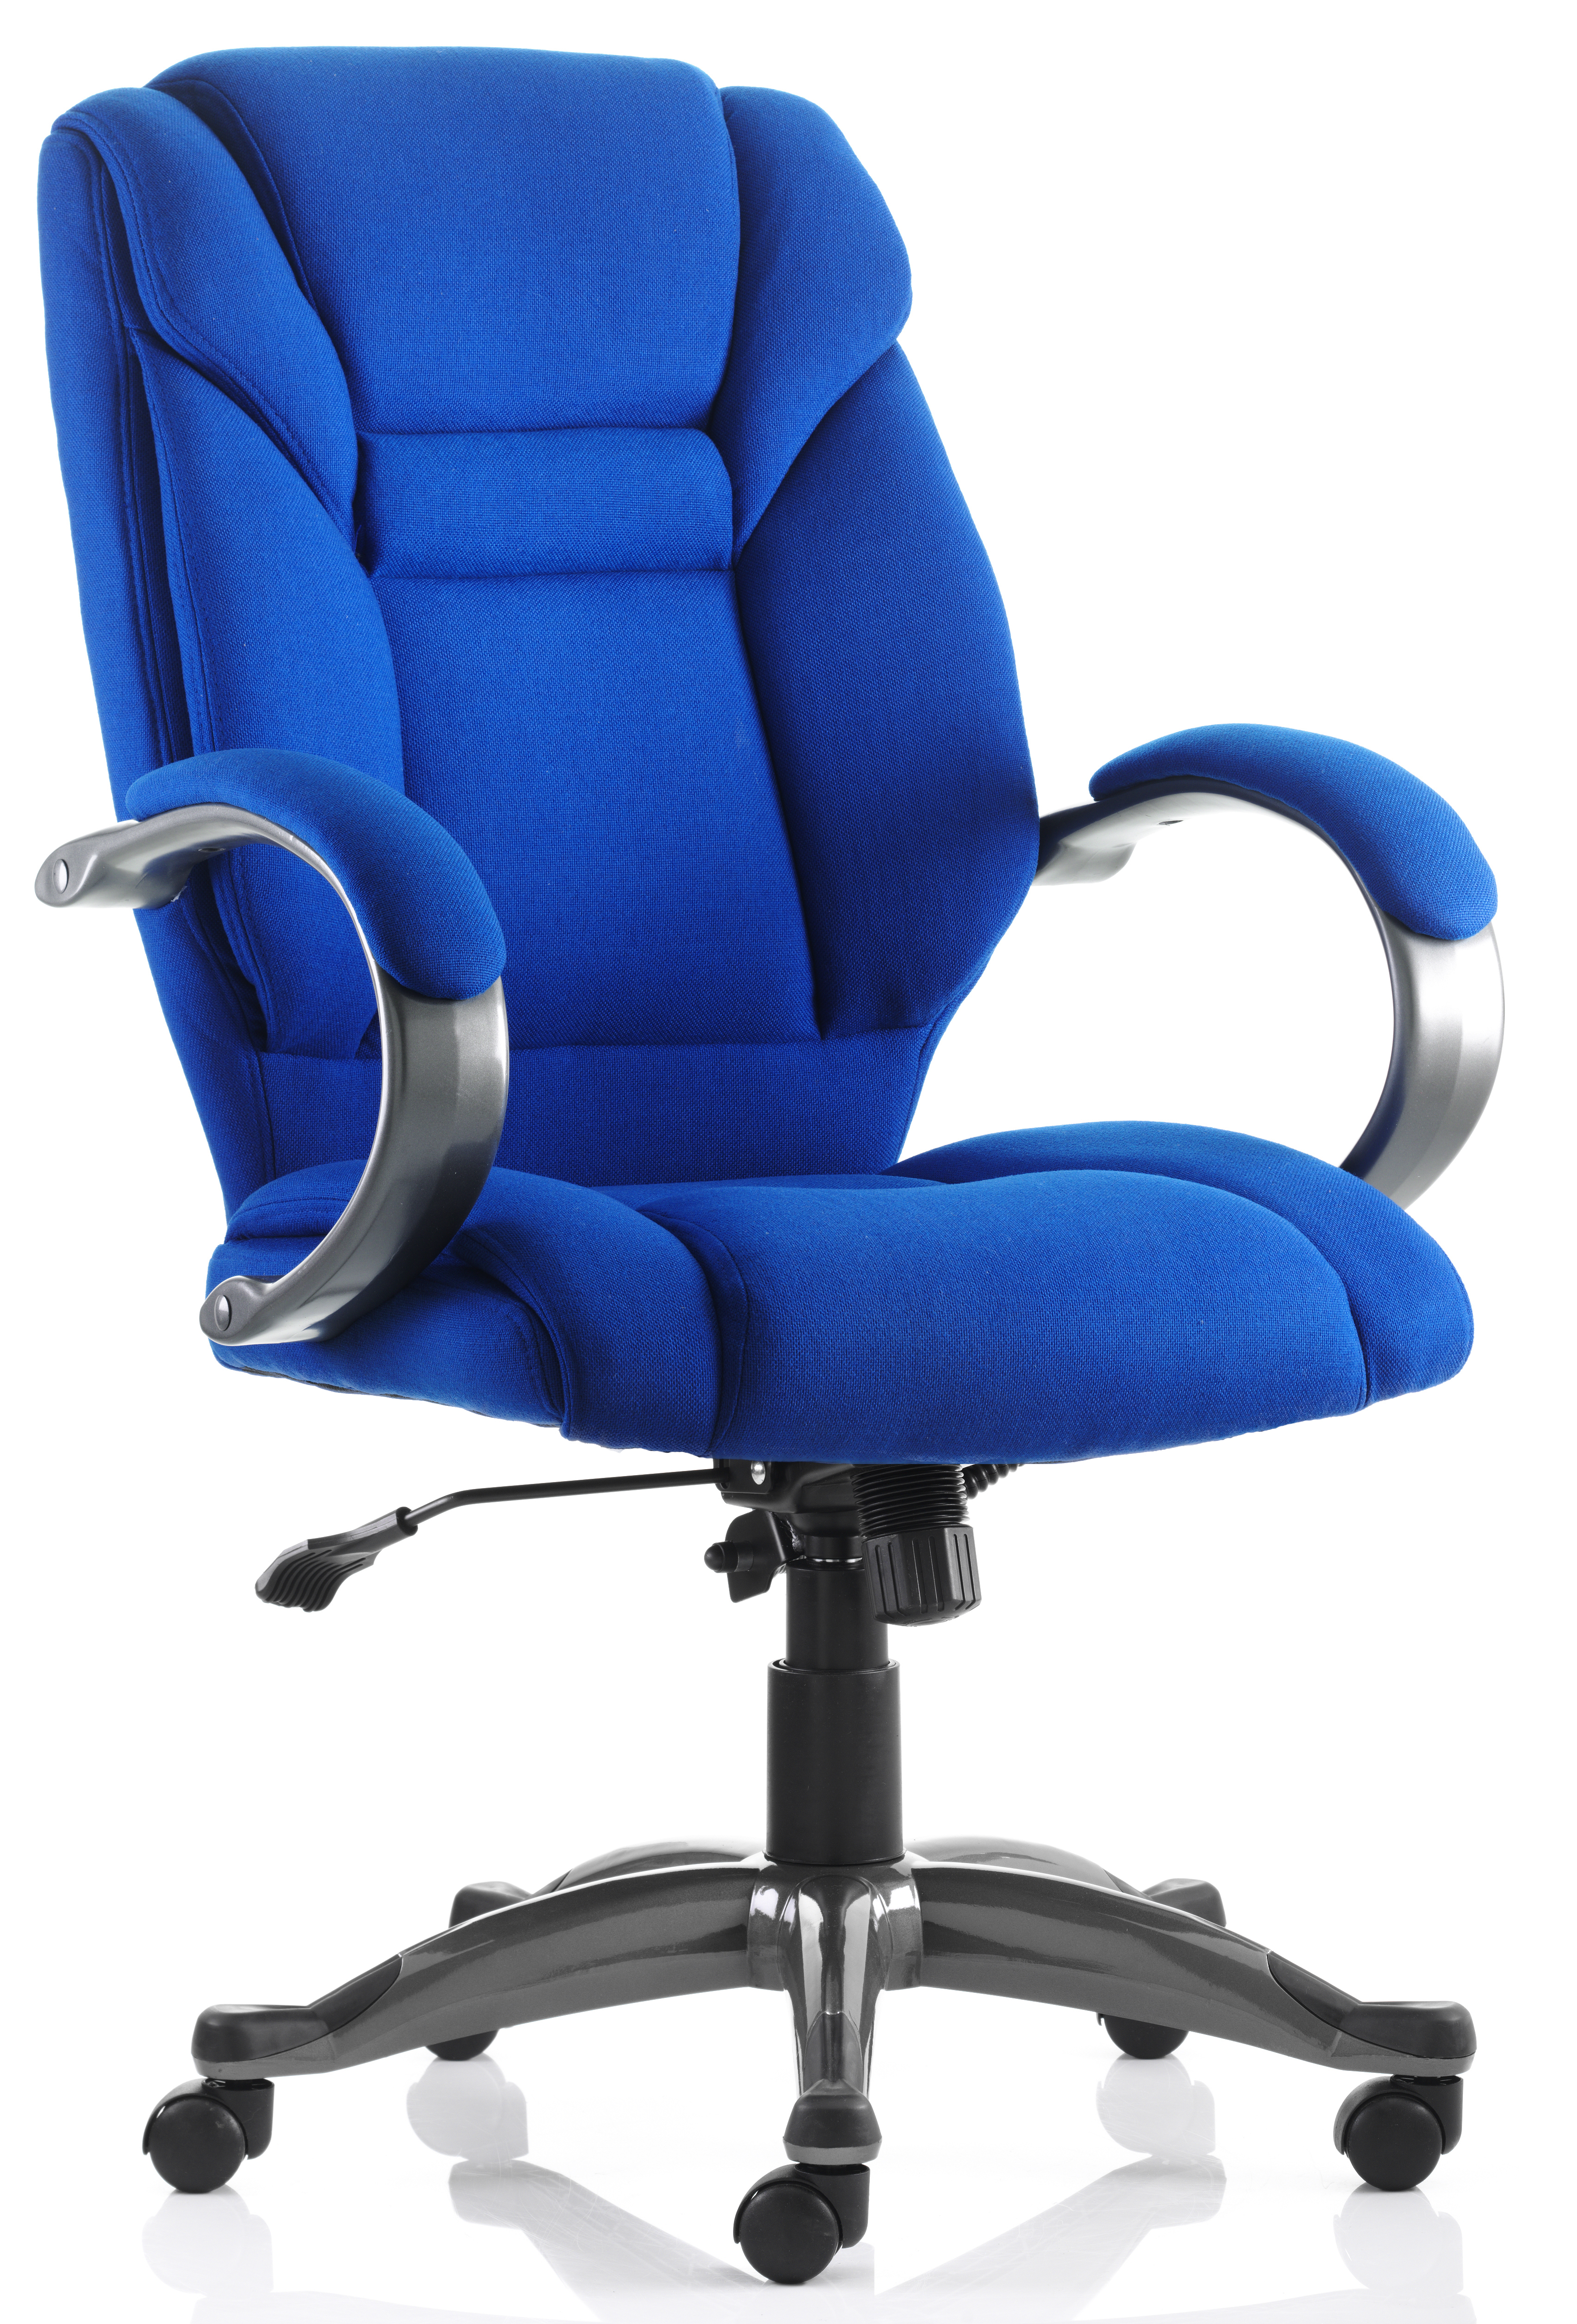 Executive Chairs Galloway Executive Chair Blue Fabric EX000031